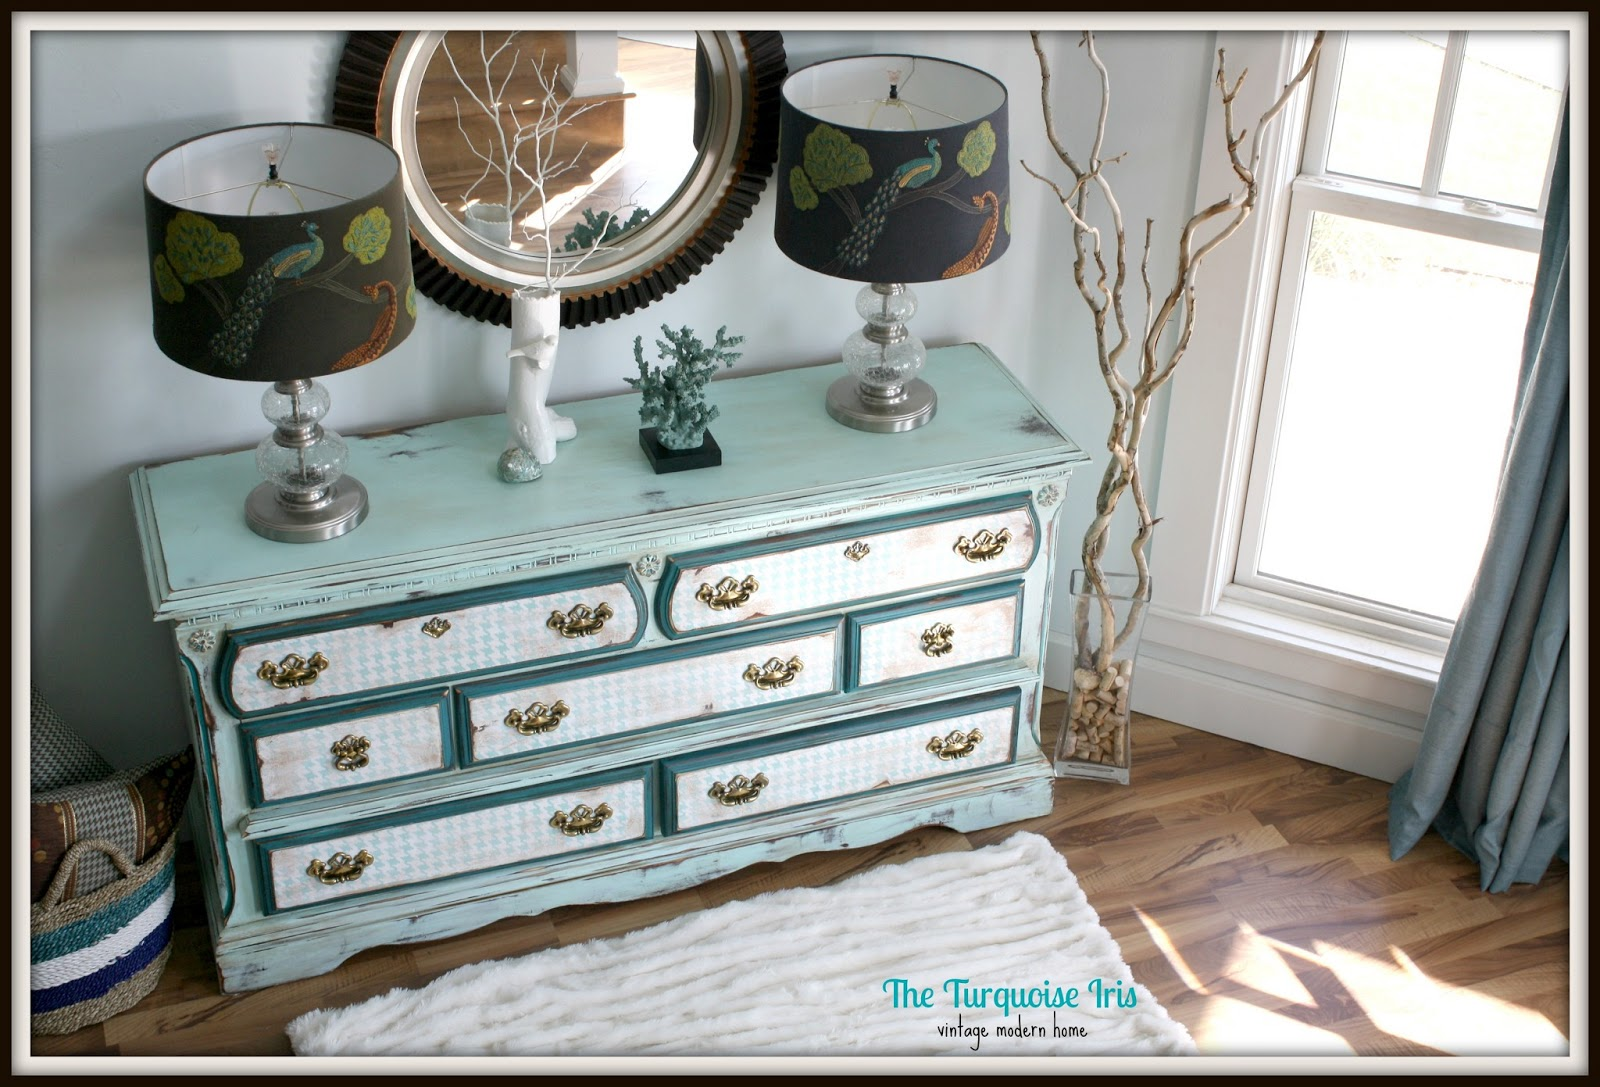 The Turquoise Iris Furniture Amp Art Hounds Tooth Dresser